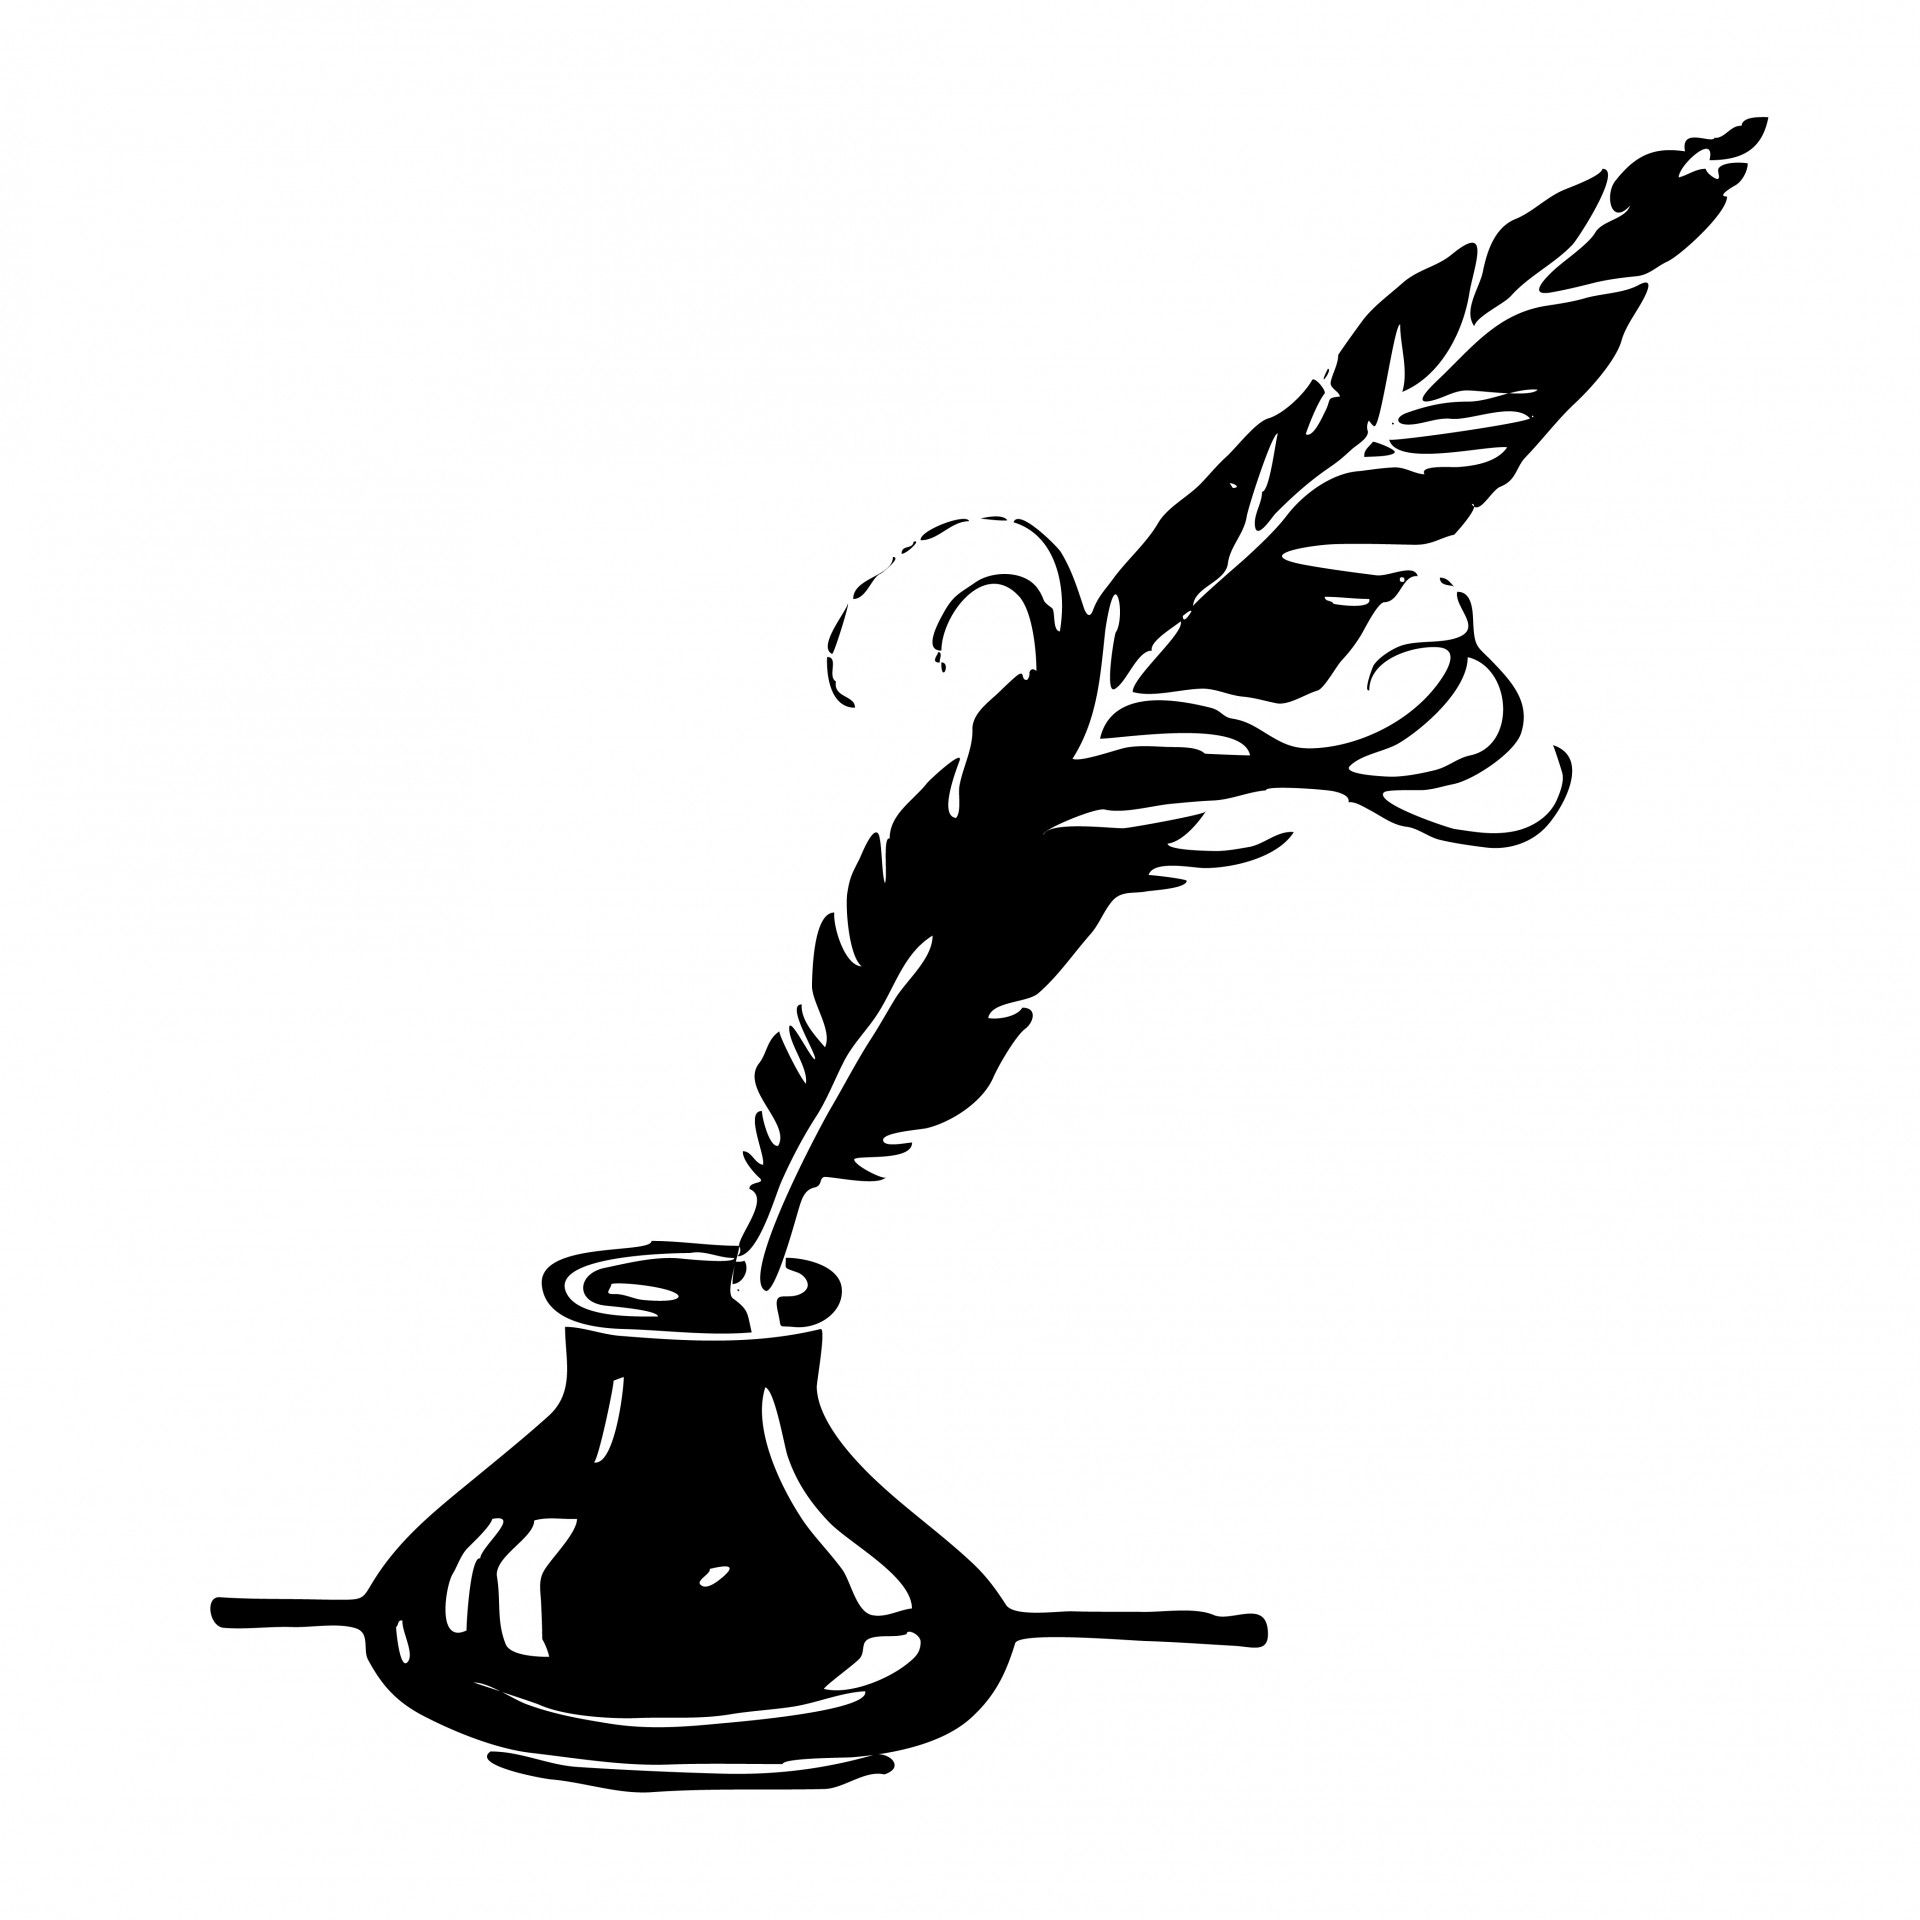 Quill and ink icon